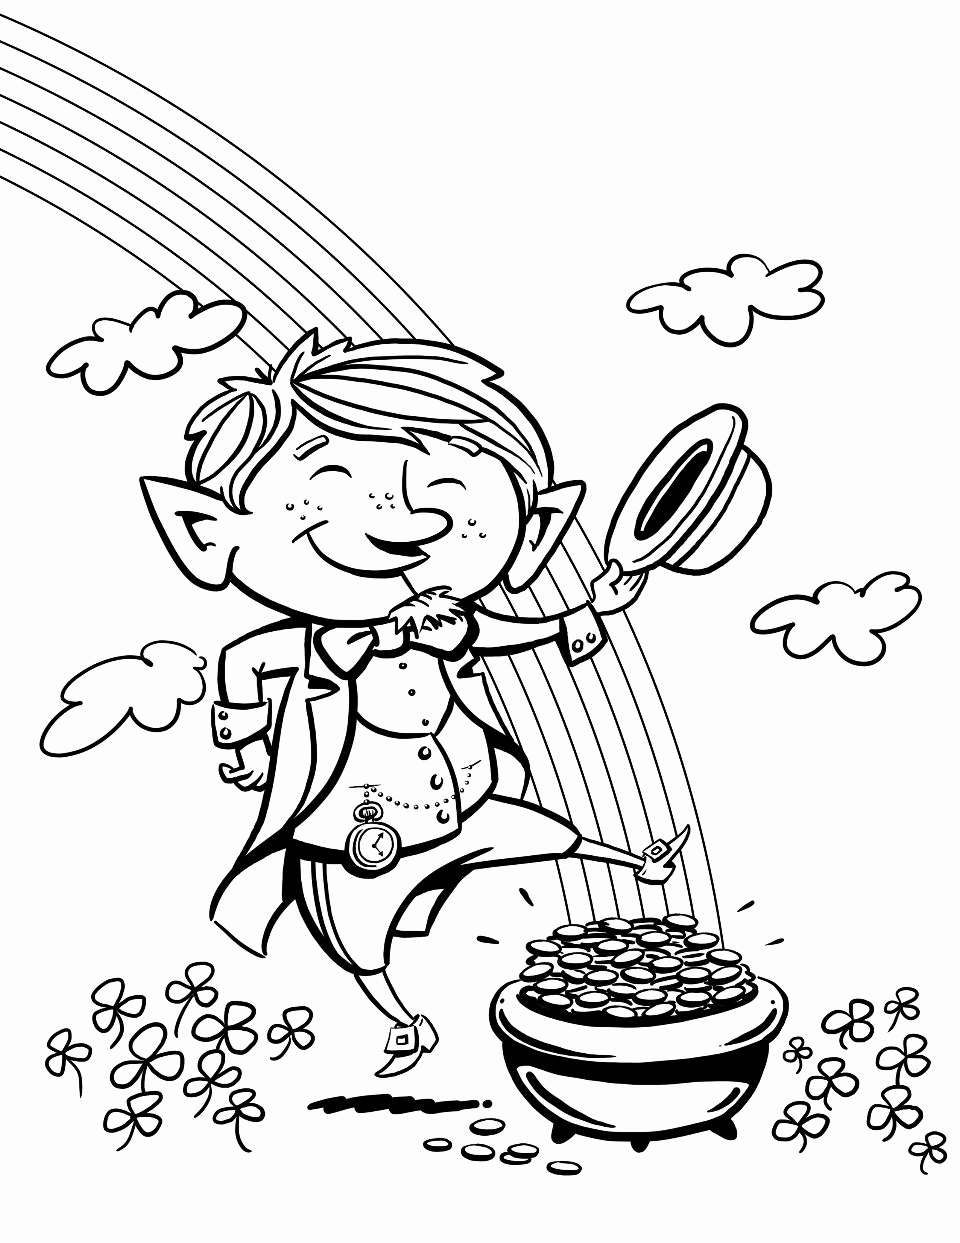 960x1243 Coloring Pages Saint Patrick Coloring Pages St Patrick S Day St